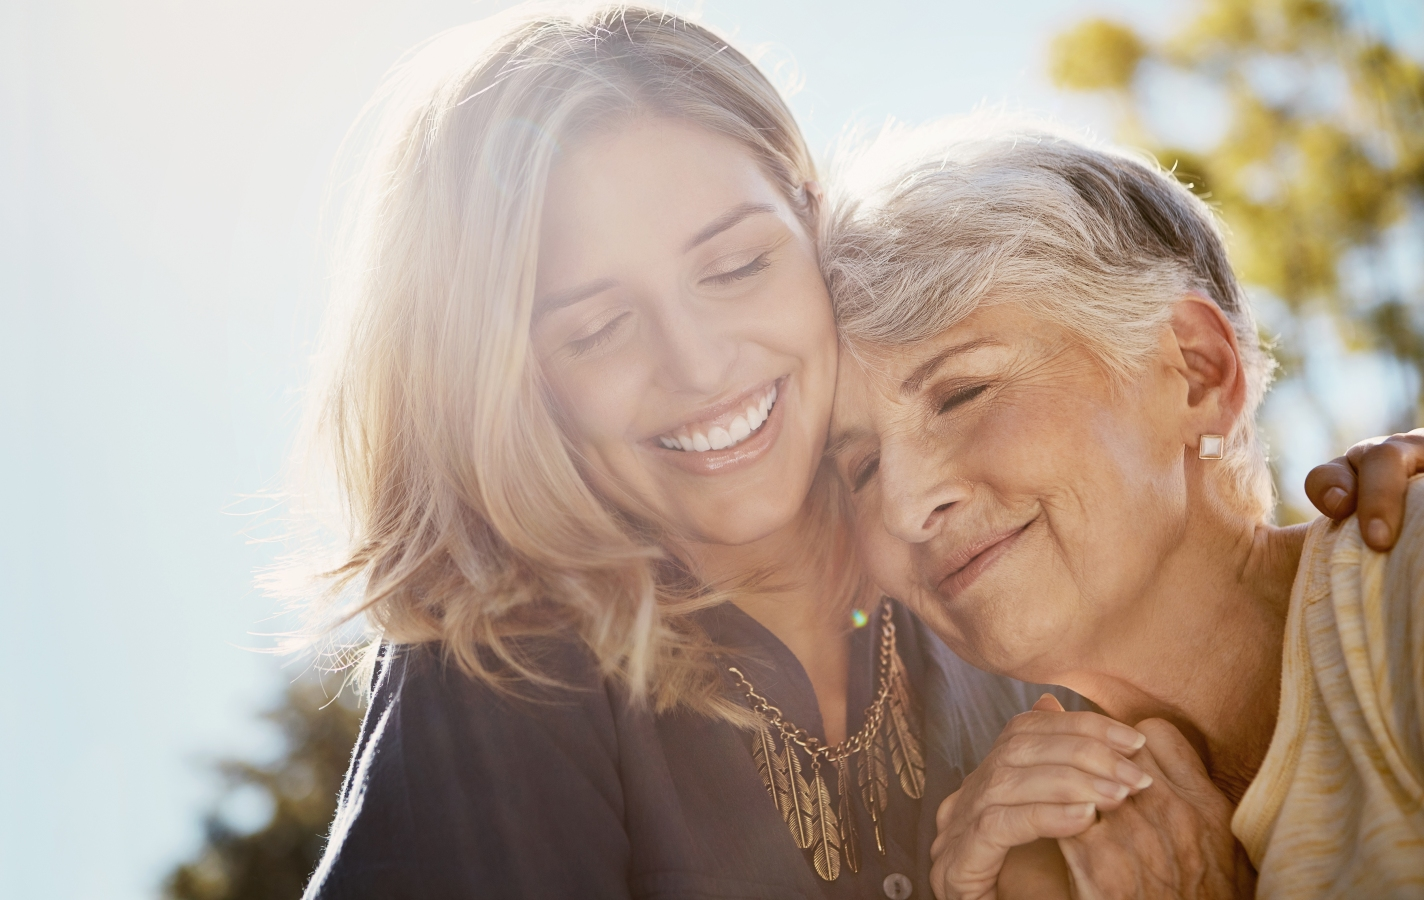 happy senior woman spending quality time with her daughter outdoors